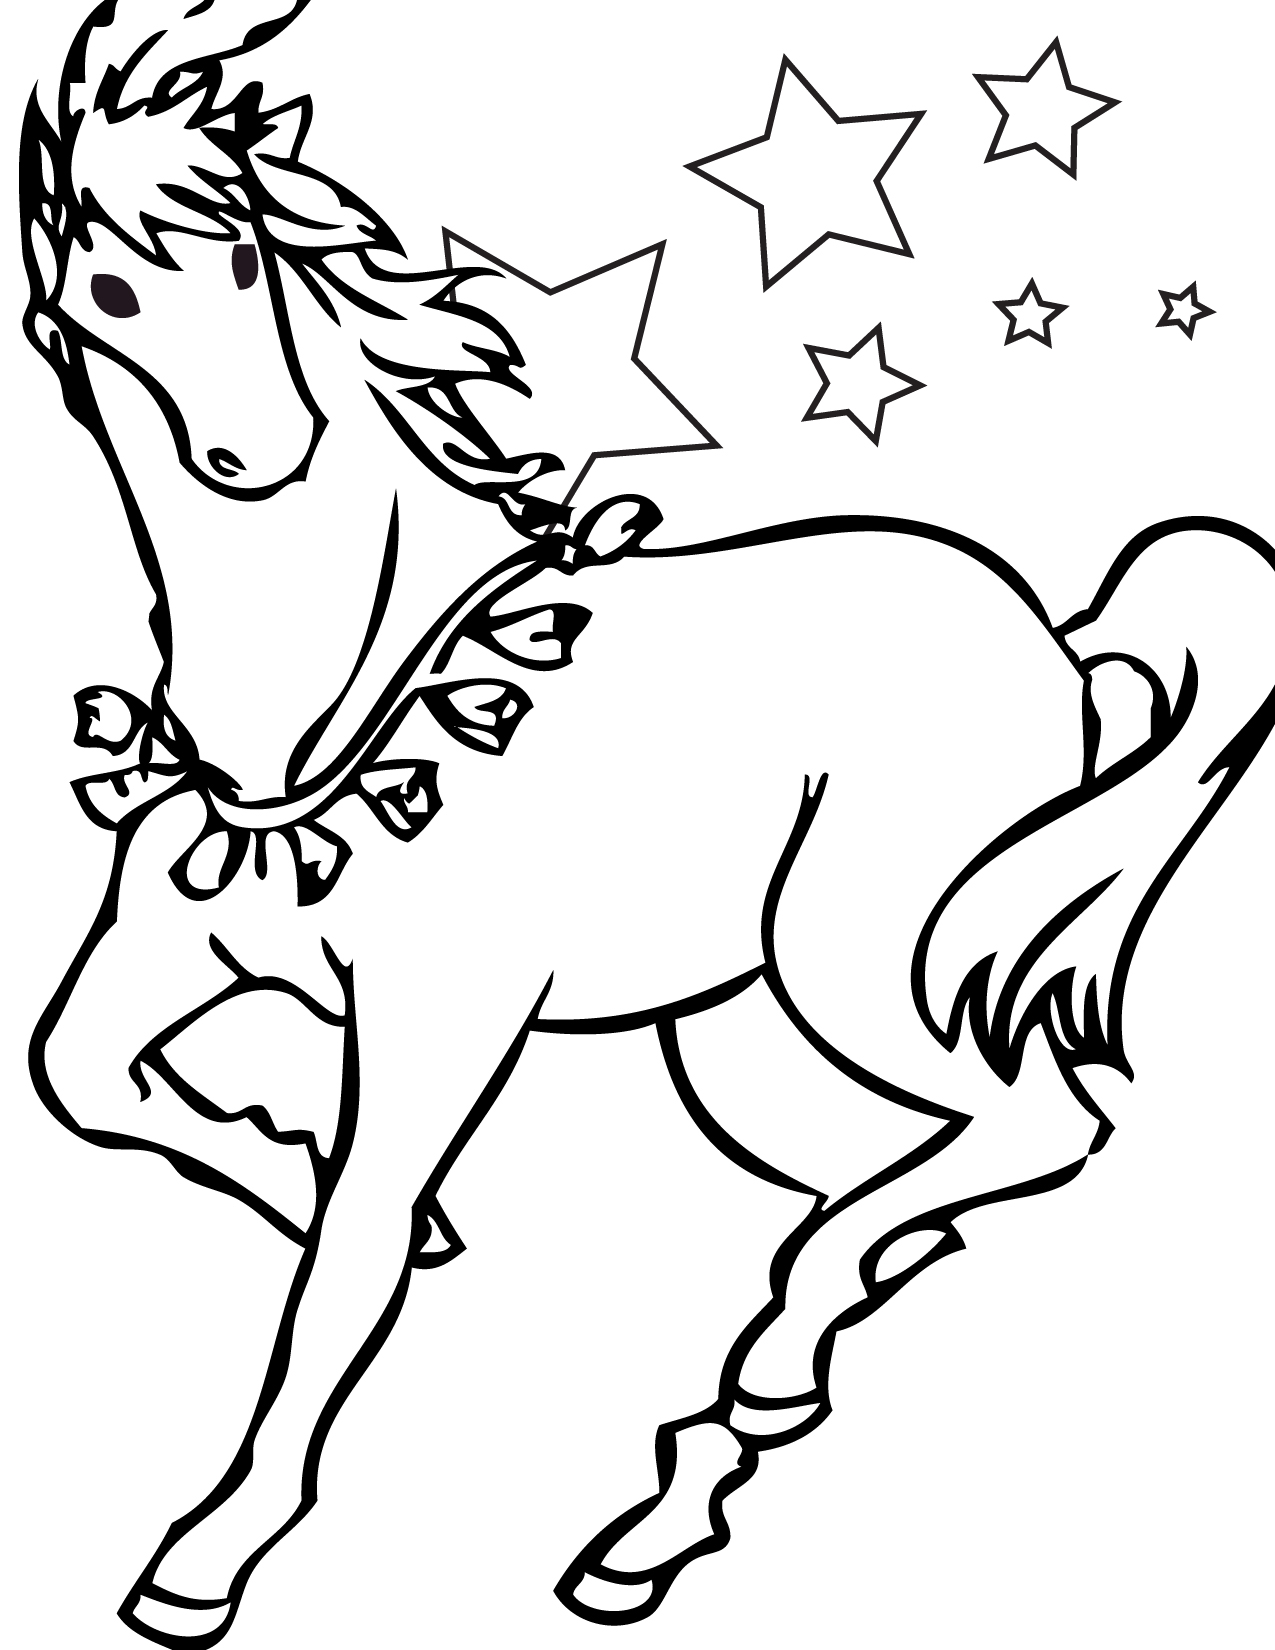 beautiful horse coloring pages incredible domestic animal horse 20 horse coloring pages pages horse coloring beautiful